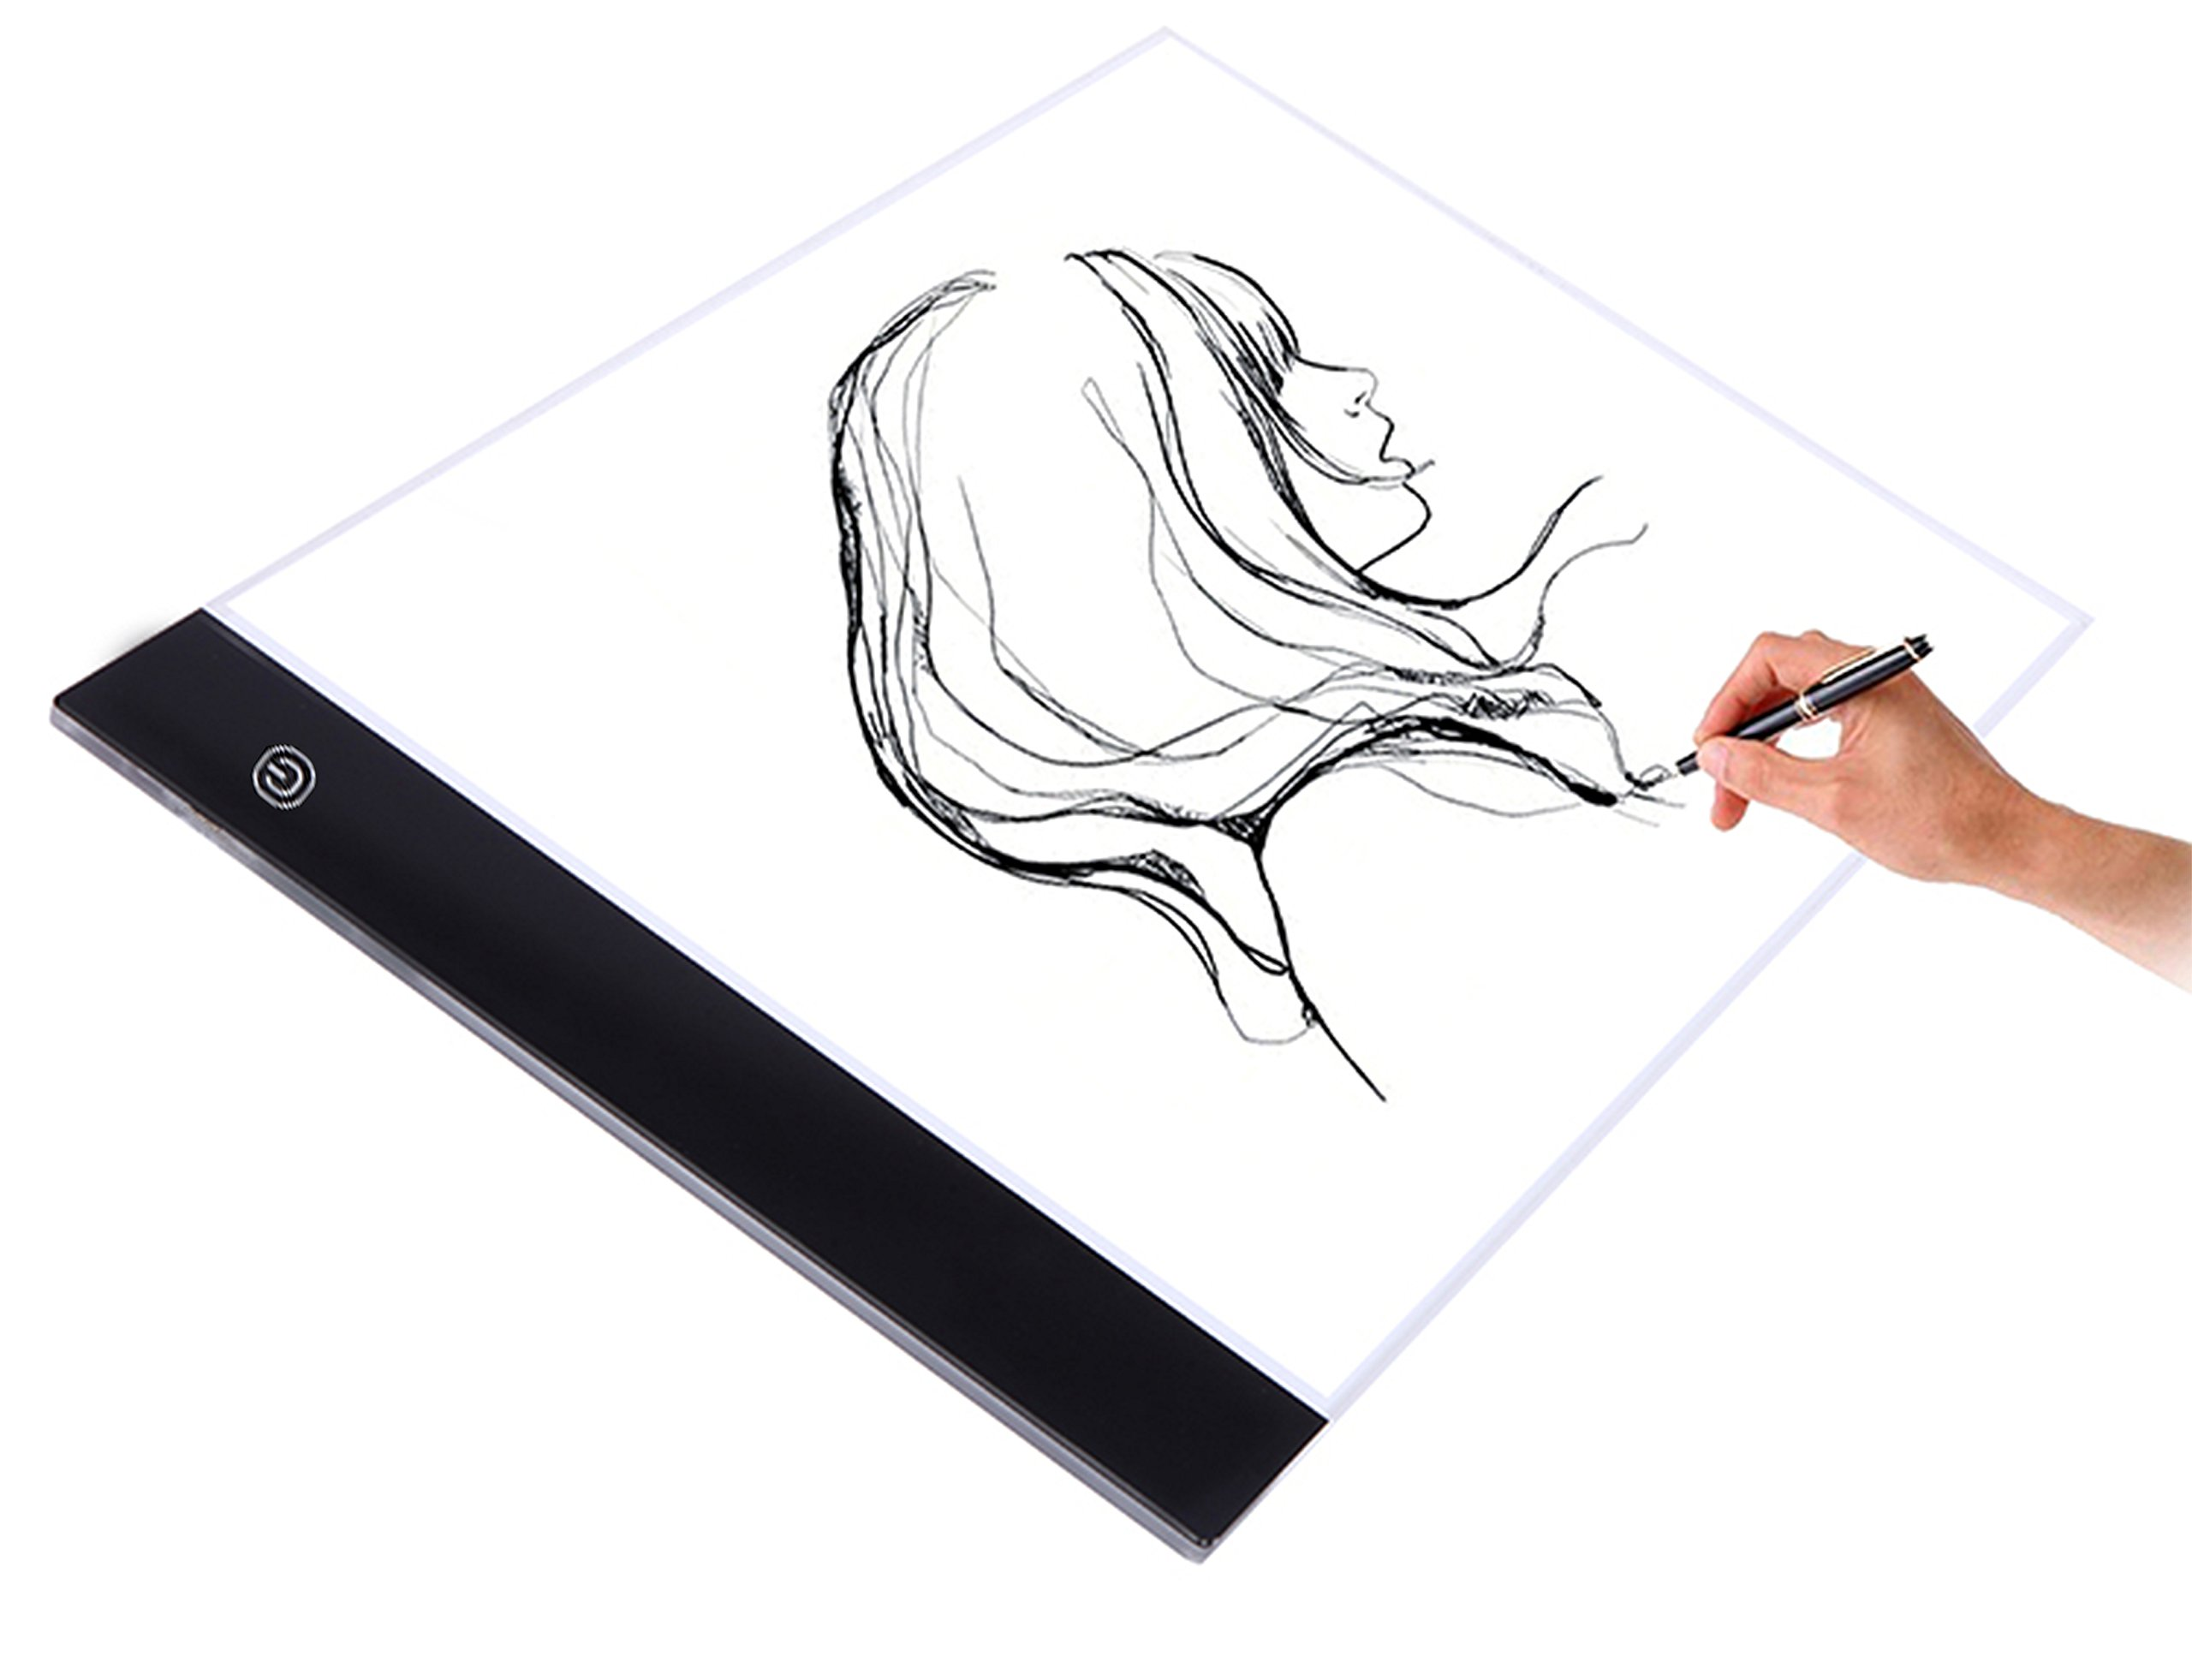 A4 Size Ultra-Slim Portable LED Light Box Tracer Light LED Artcraft Tracing Light Pad Light Box w 3 Level Brightness for Artists,Drawing, Sketching, Animation